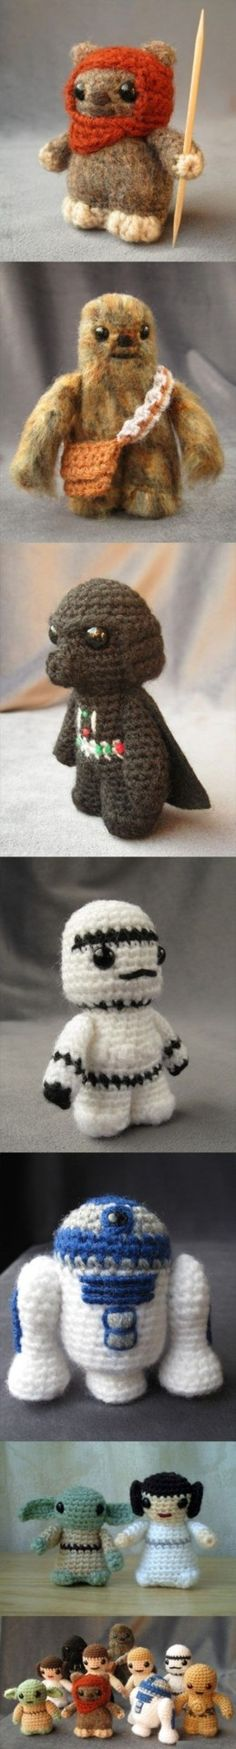 Seriously, I need to learn how to crochet!